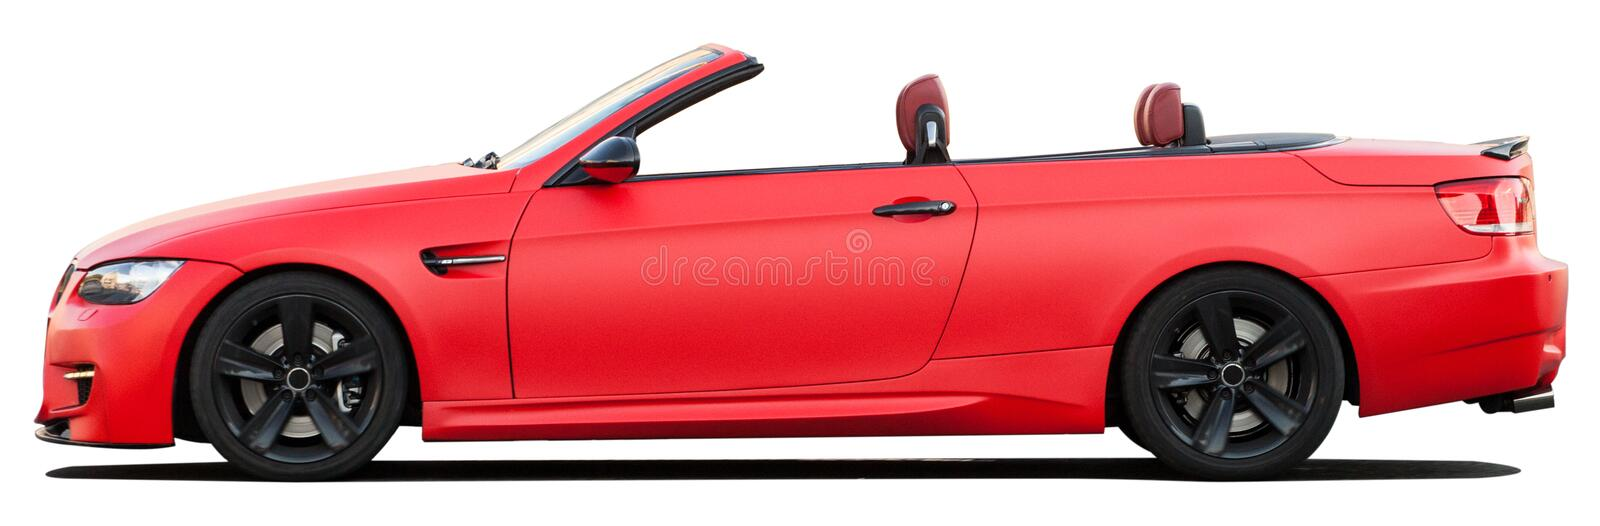 Red BMW convertible car on a transparent background stock photos